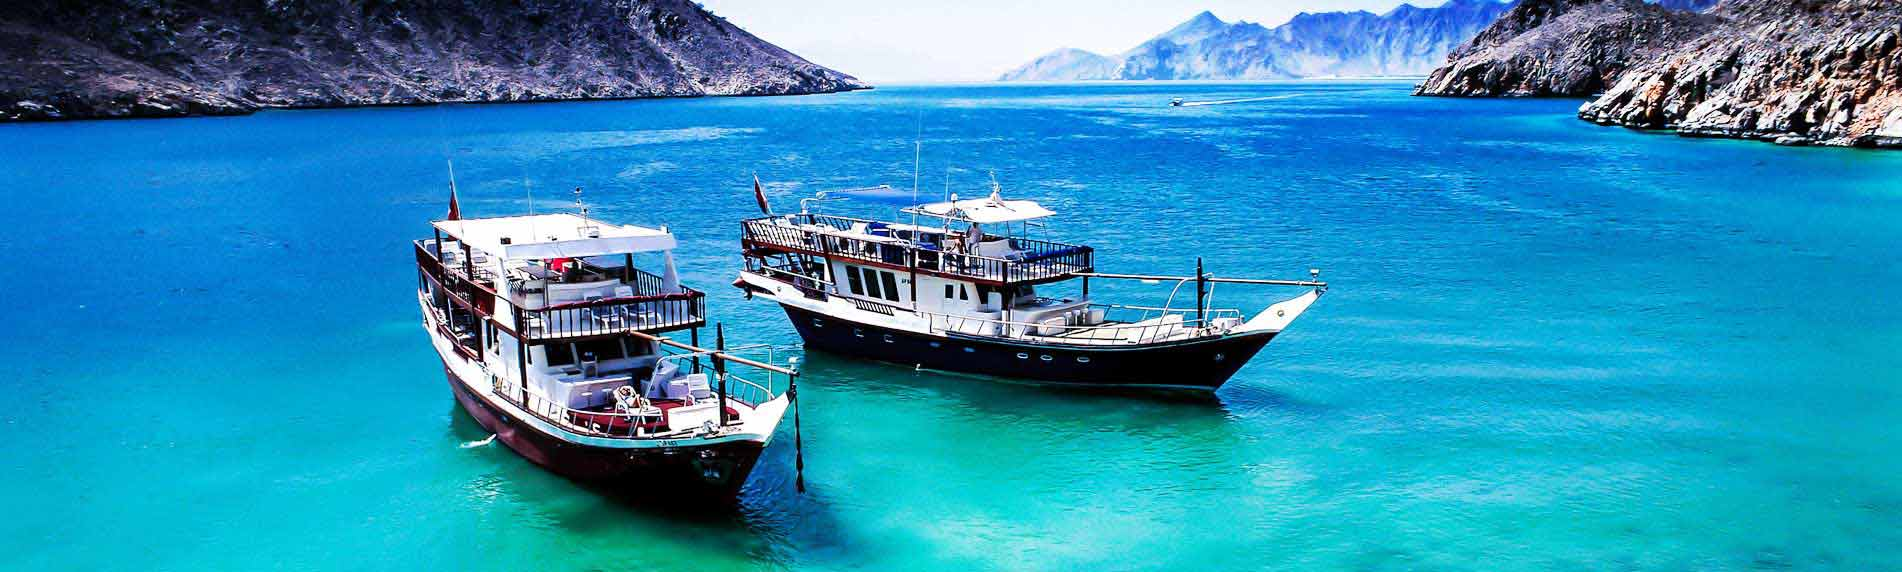 Musandam Dibba Tour in Oman